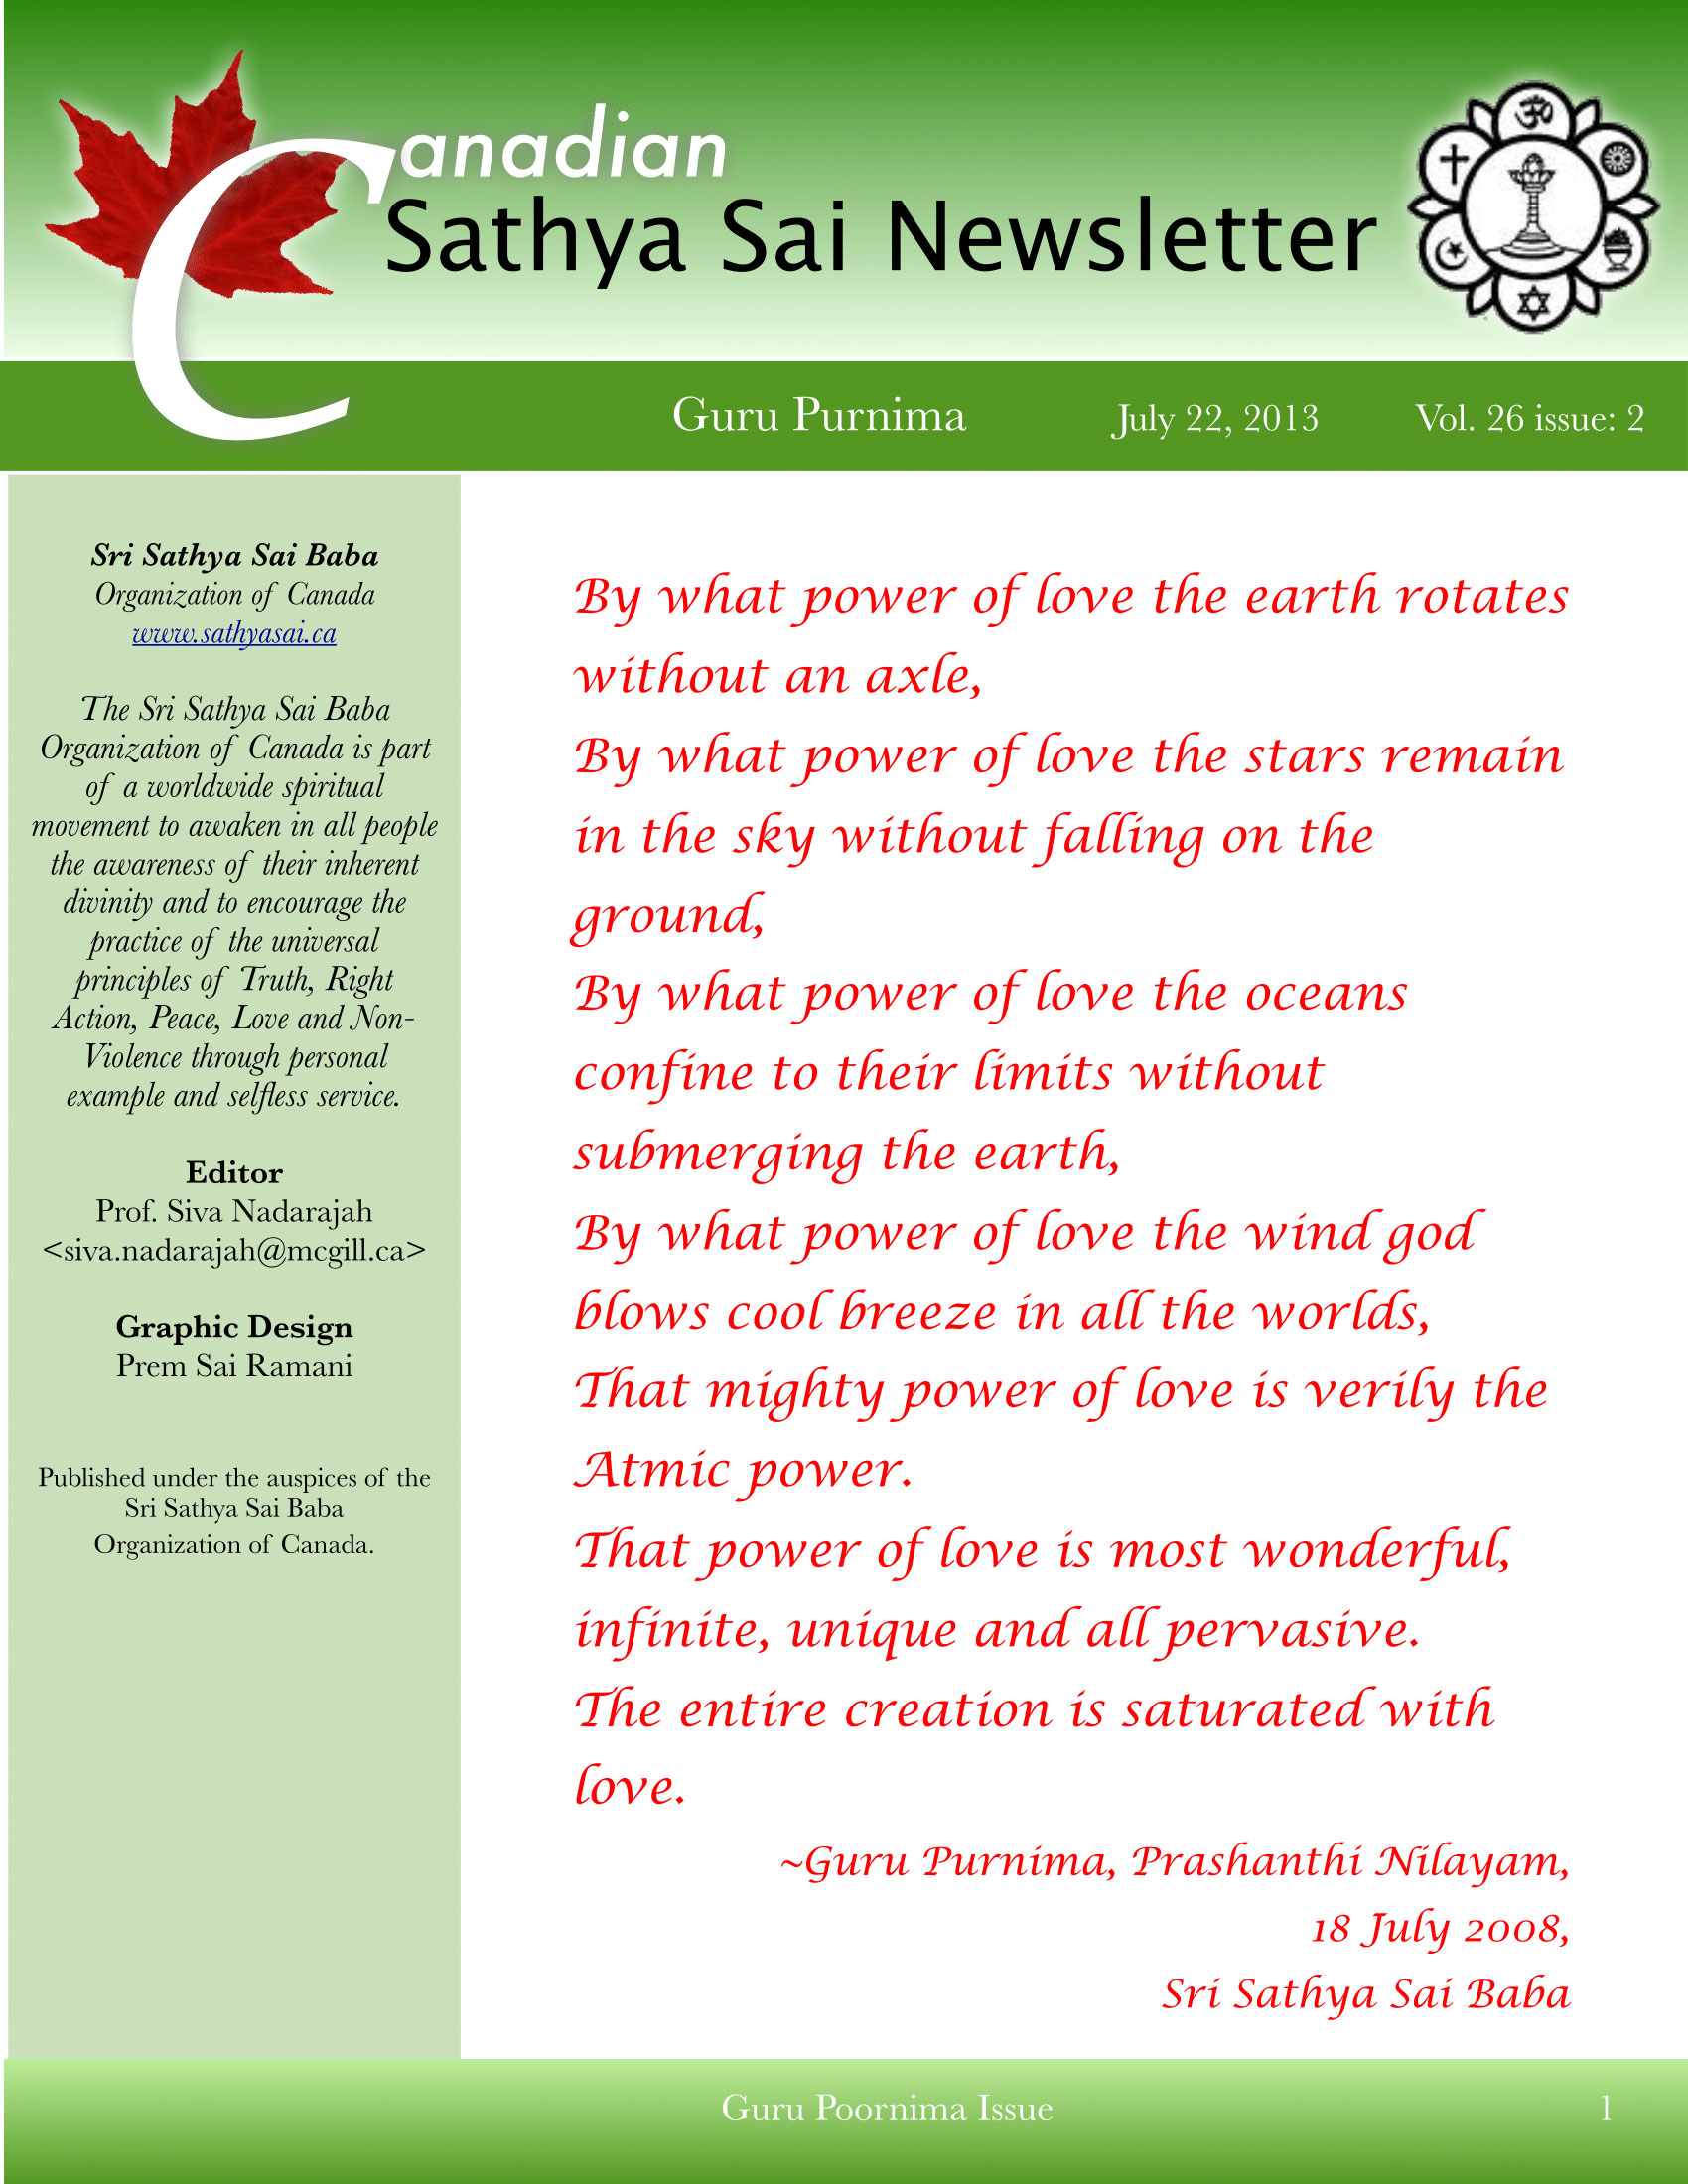 The Canadian Sathya Sai Magazine - Summer 2013